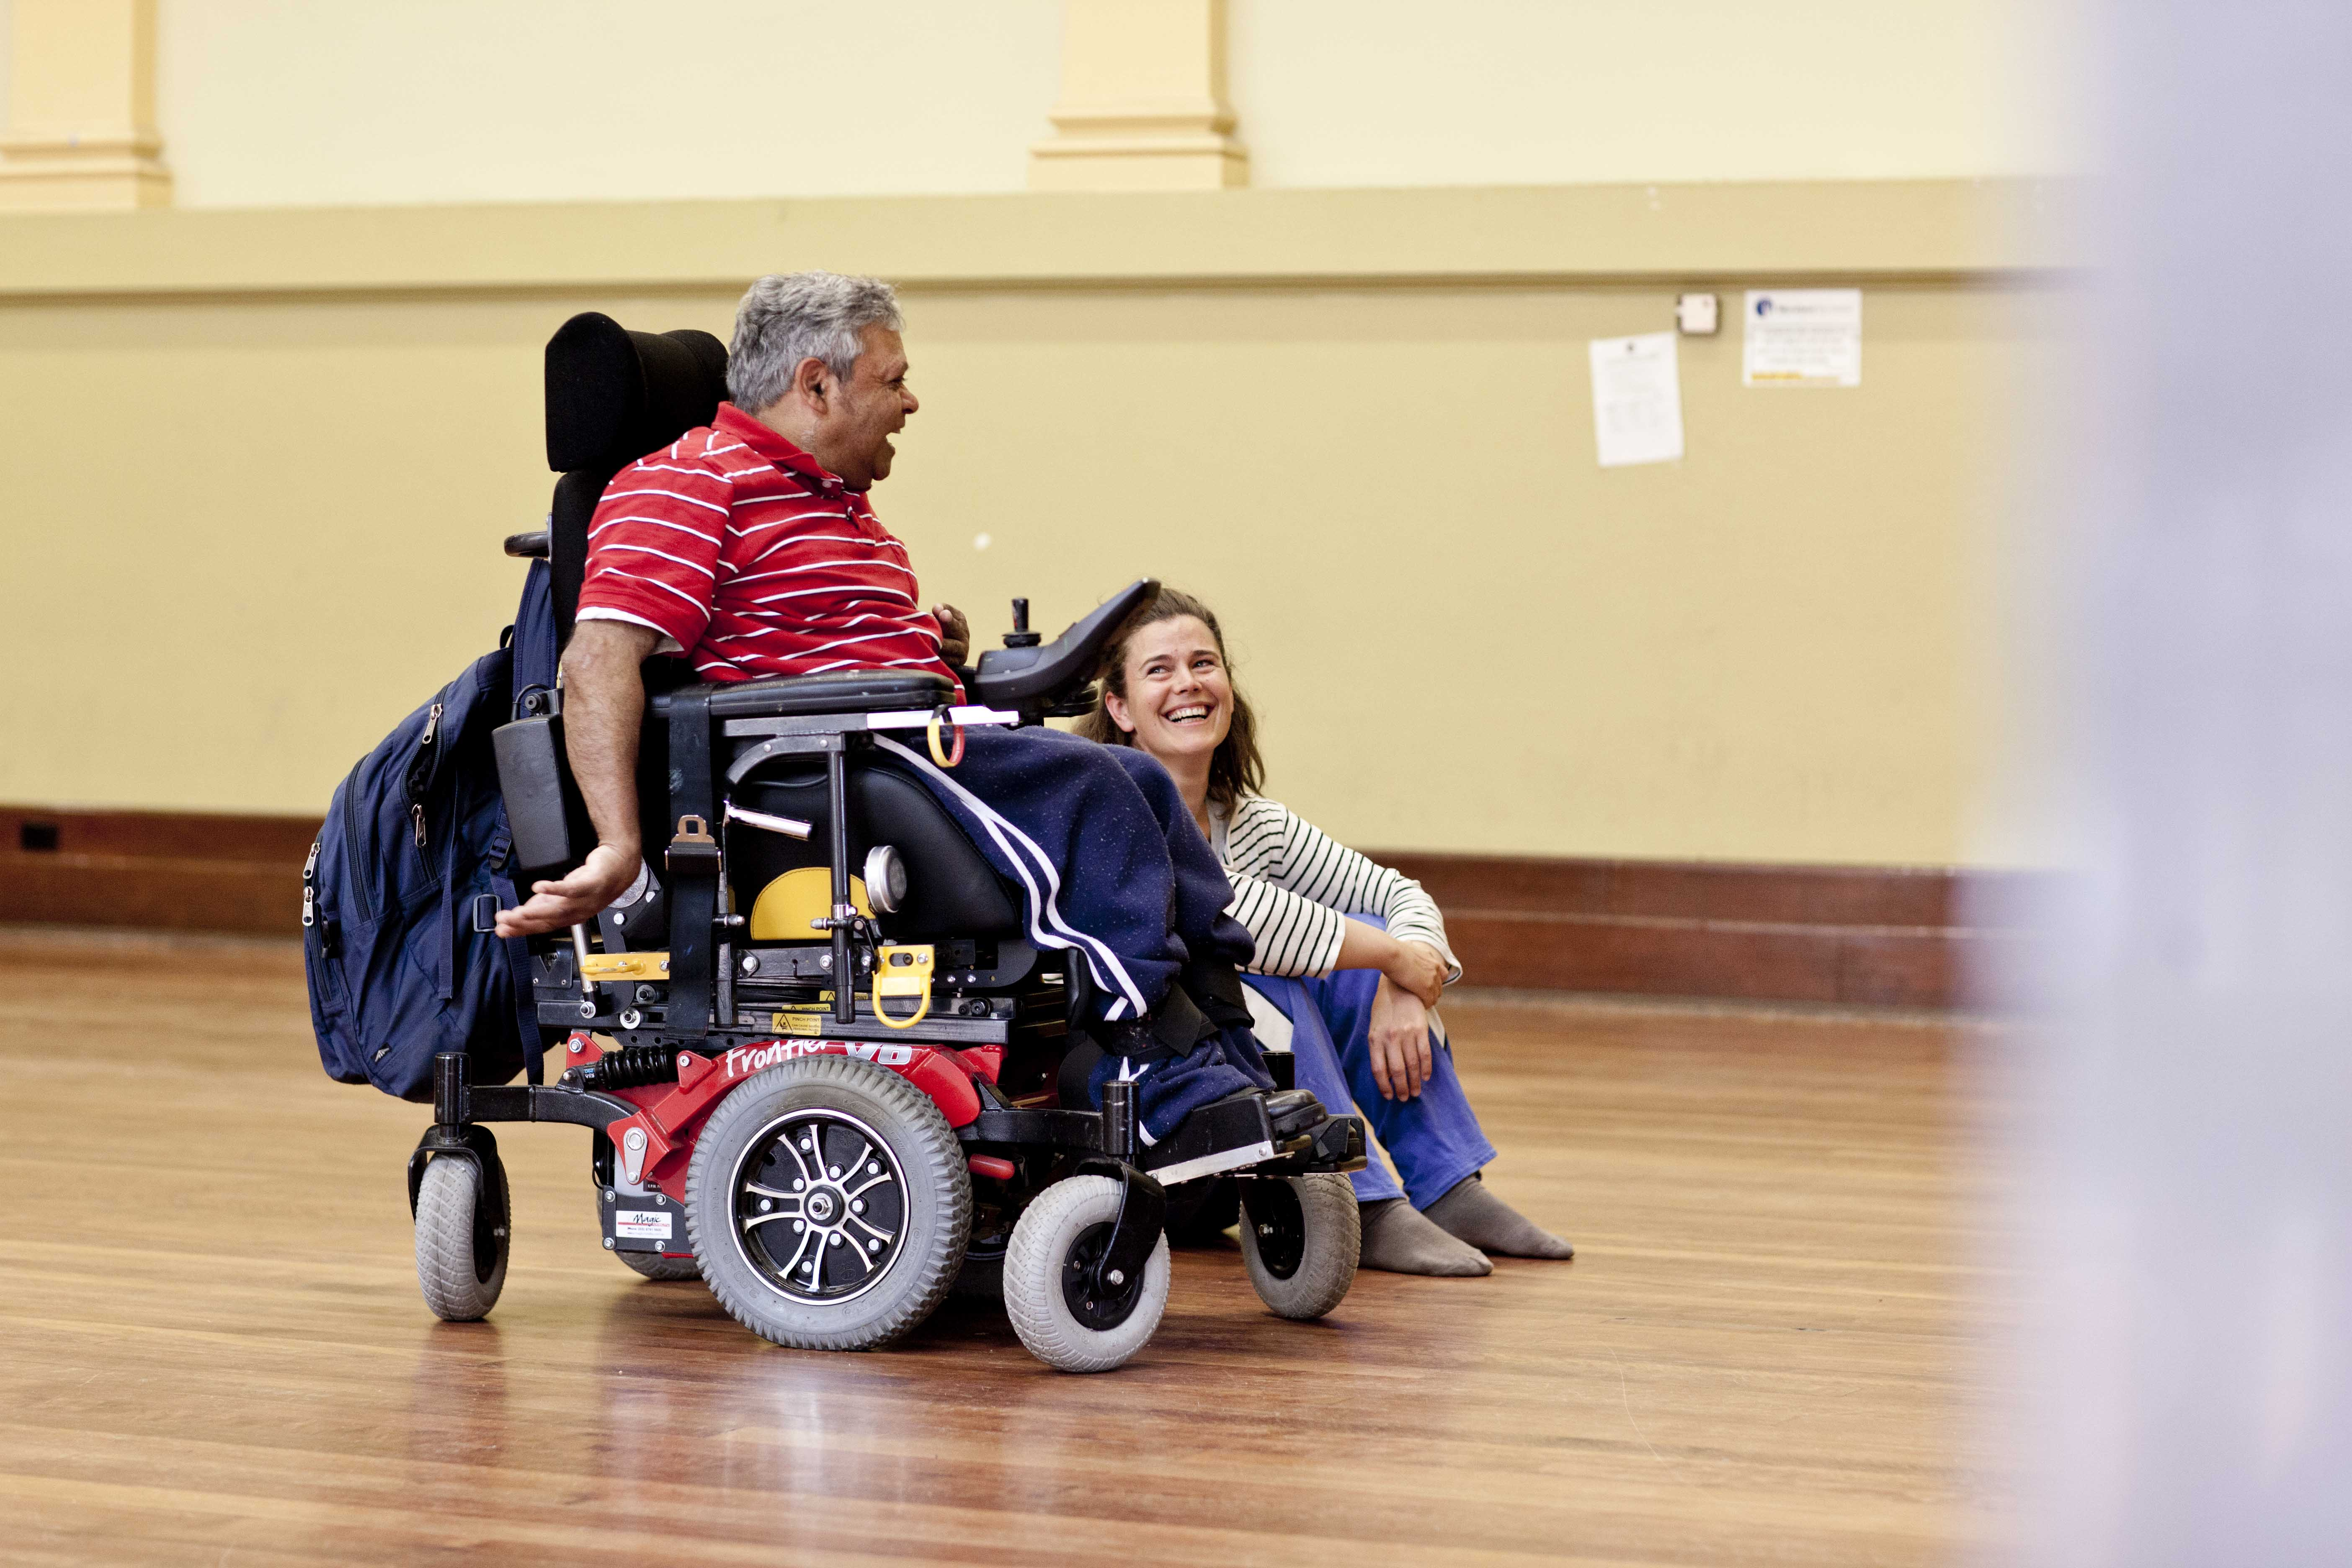 Man in wheelchair laughing with woman sitting on the floor.